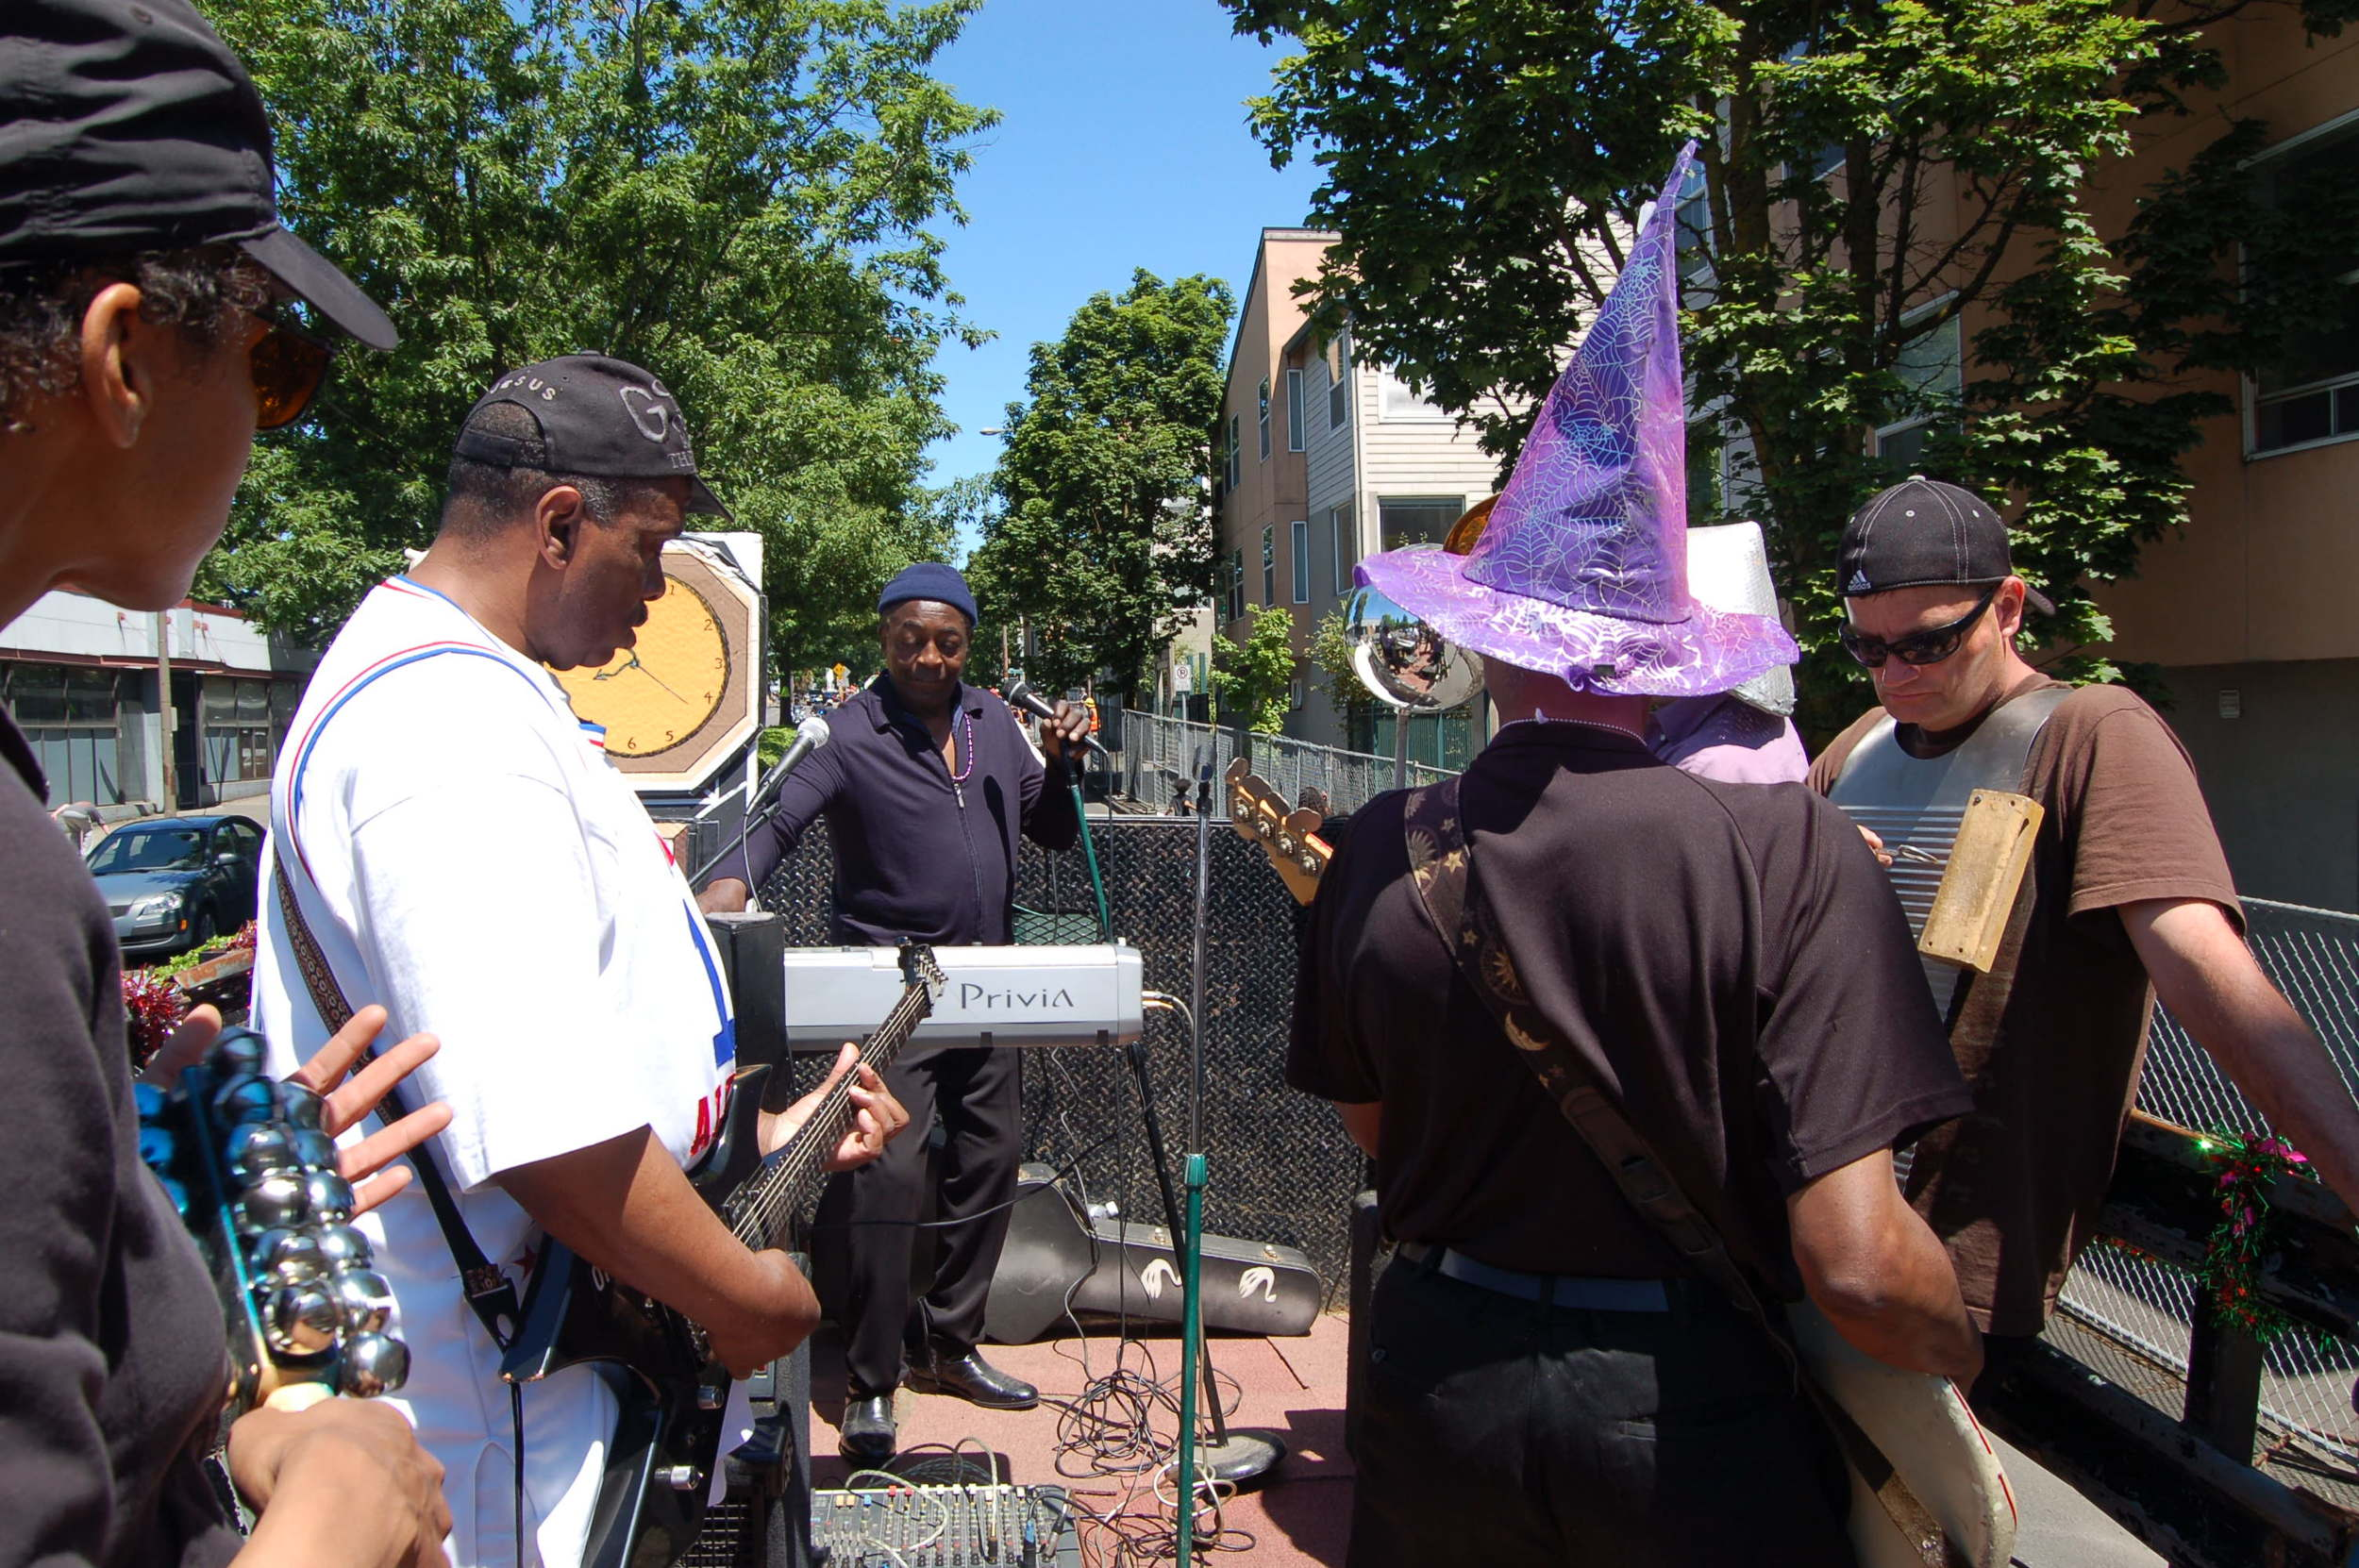 ReBuilding Center's Good in the Hood Parade float back in 2011 with Ural Thomas!